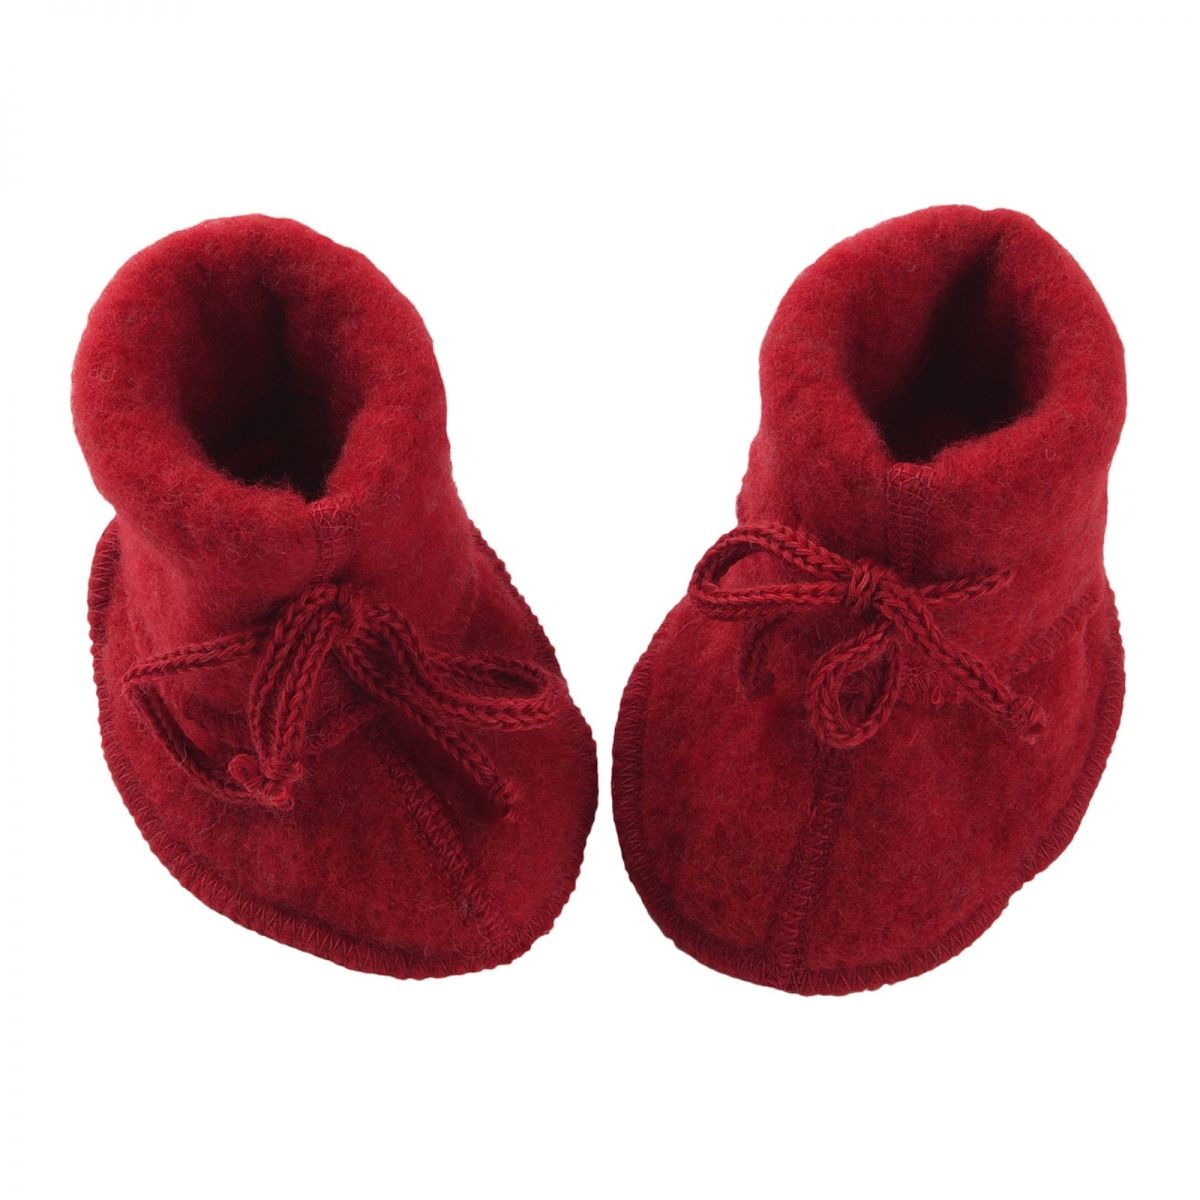 ENGEL Baby-bootees with ribbon red melange